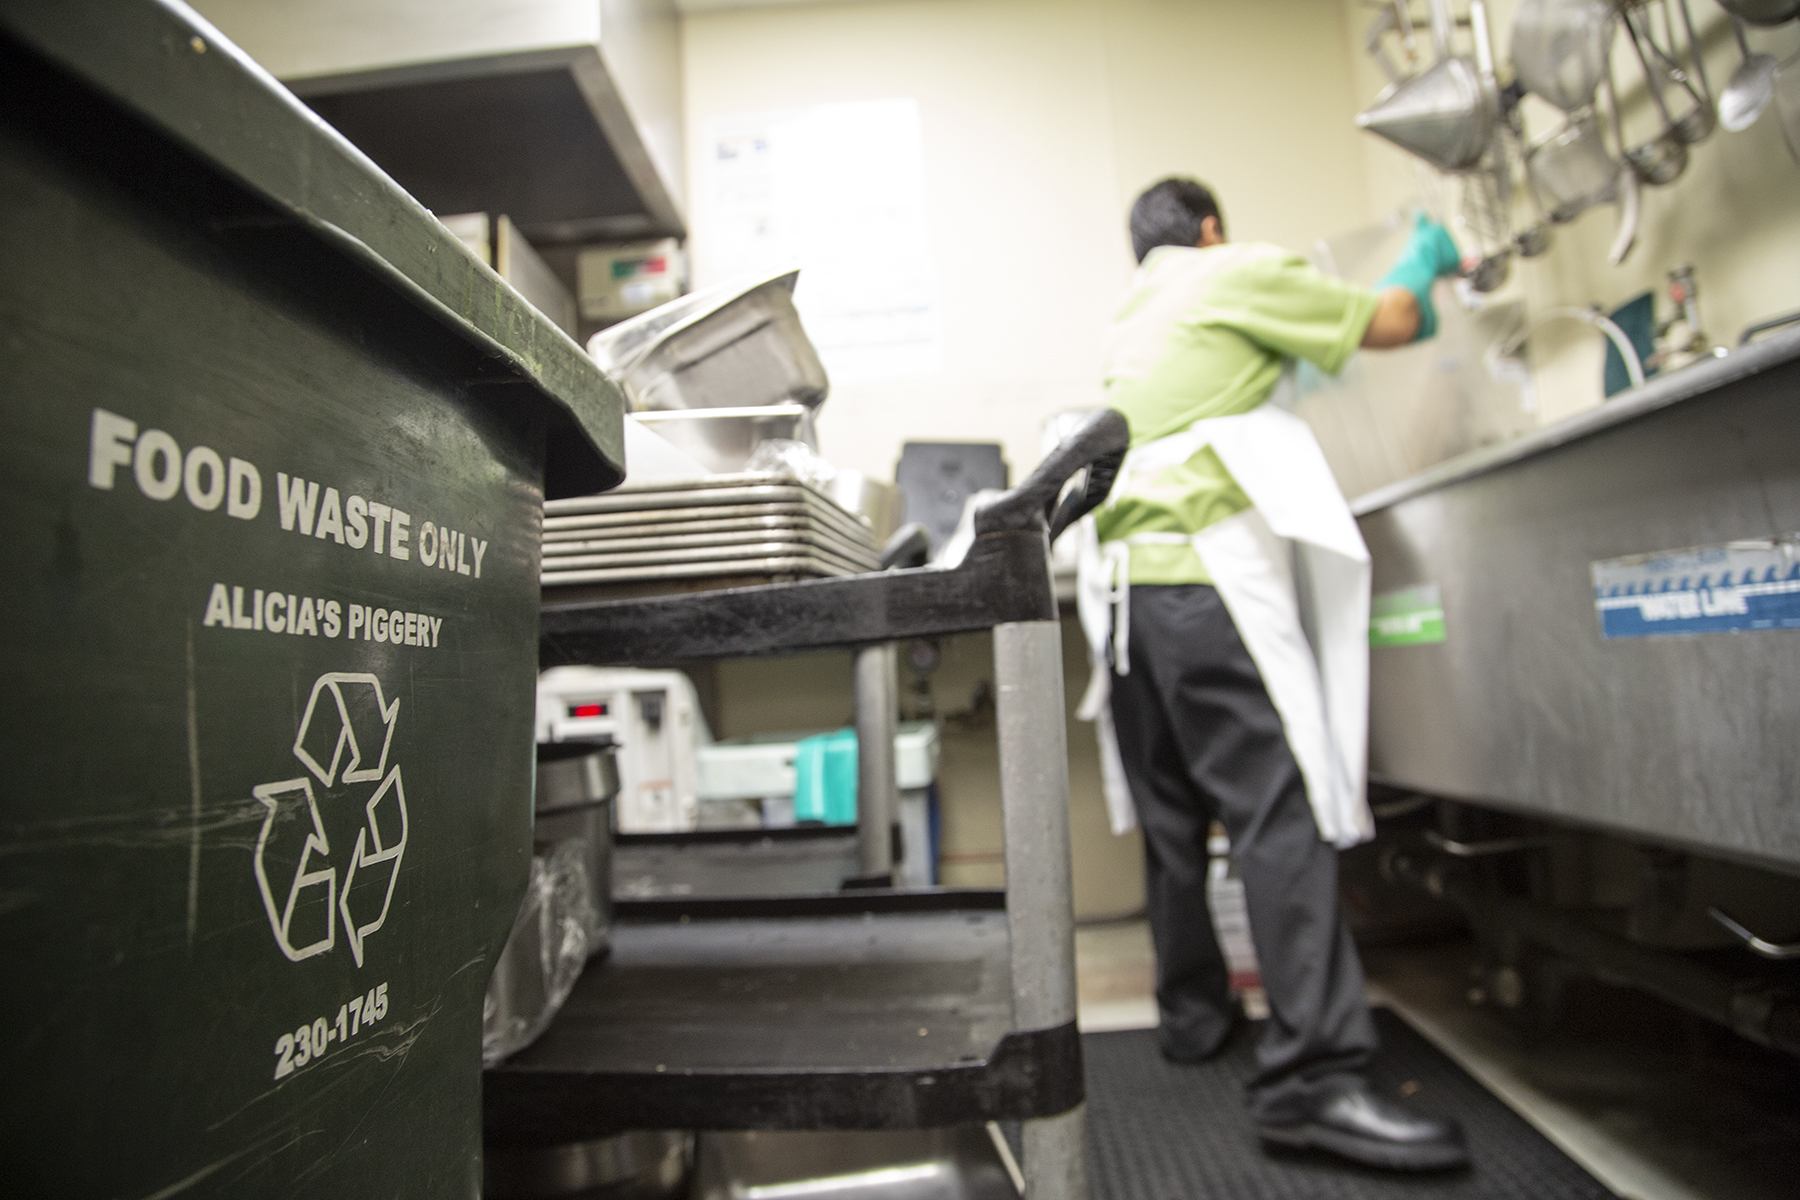 Queen's Medical Center Cafeteria Trash Can Food Waste